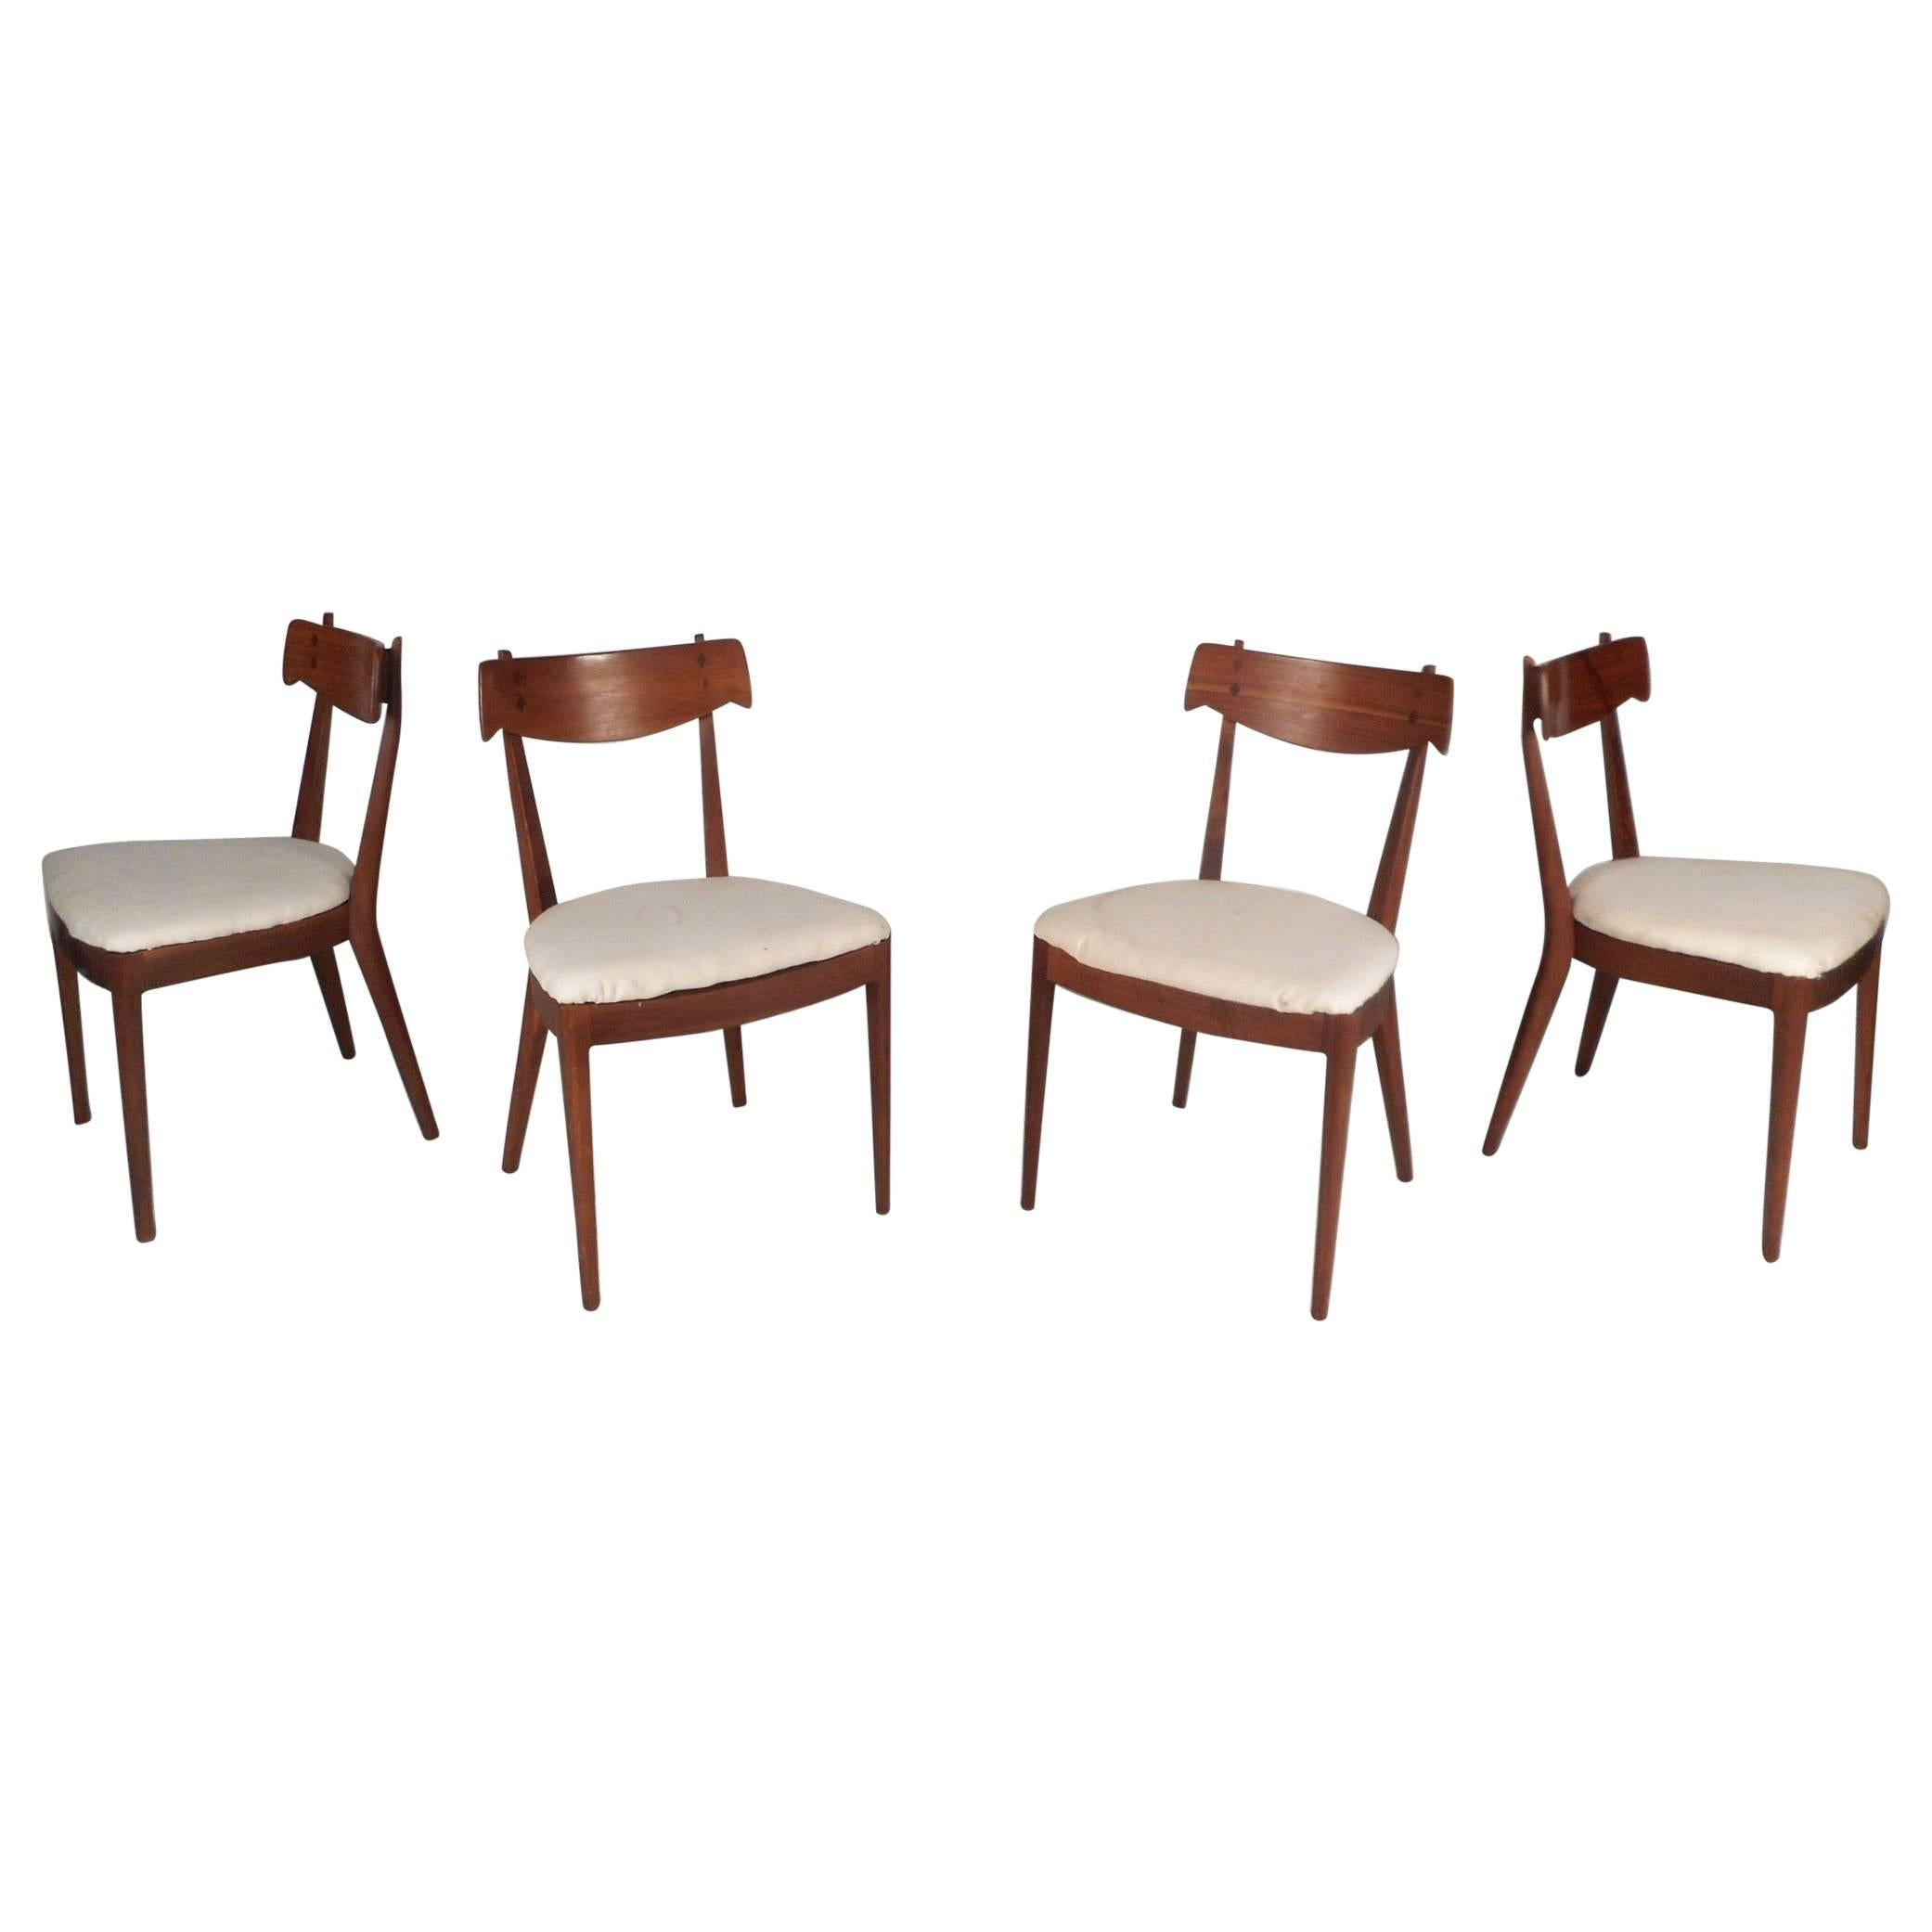 Set Of Mid Century Modern Drexel Declaration Dining Chairs By Kipp Stewart.